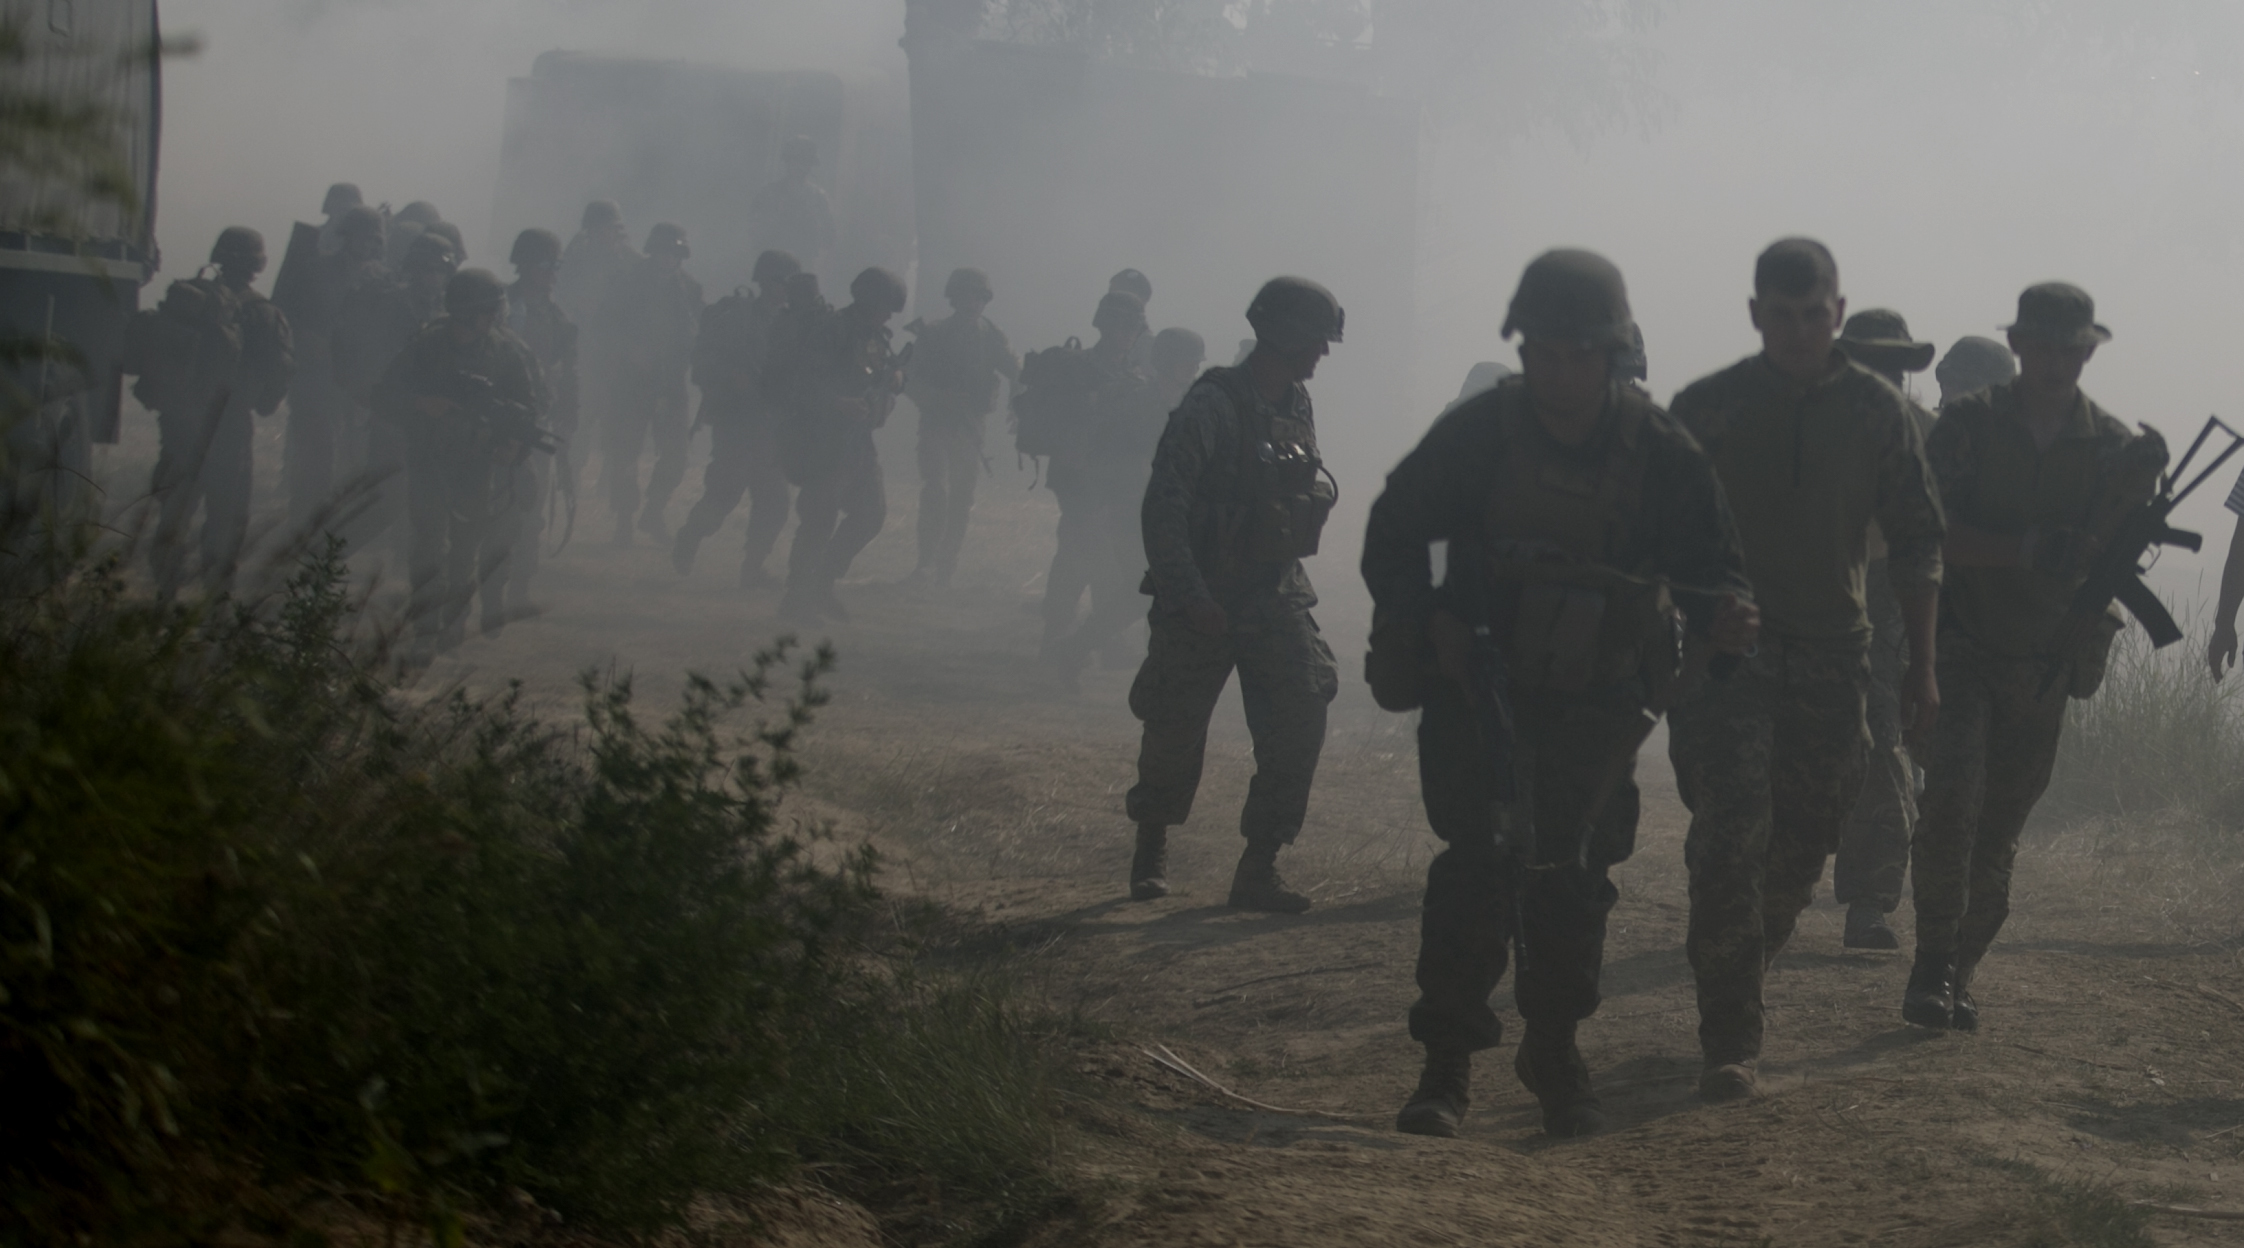 U.S. Marines assigned to U.S. Marine Corps Forces Europe and Africa and Ukrainian marines secure the beach after an amphibious landing in Nikolaev, Ukraine, during exercise Sea Breeze 2017, July 19. Sea Breeze is a U.S. and Ukraine co-hosted multinational maritime exercise held in the Black Sea and is designed to enhance interoperability of participating nations and strengthen maritime security within the region. (U.S. Marine Corps photo by Cpl. Sean J. Berry/Released)